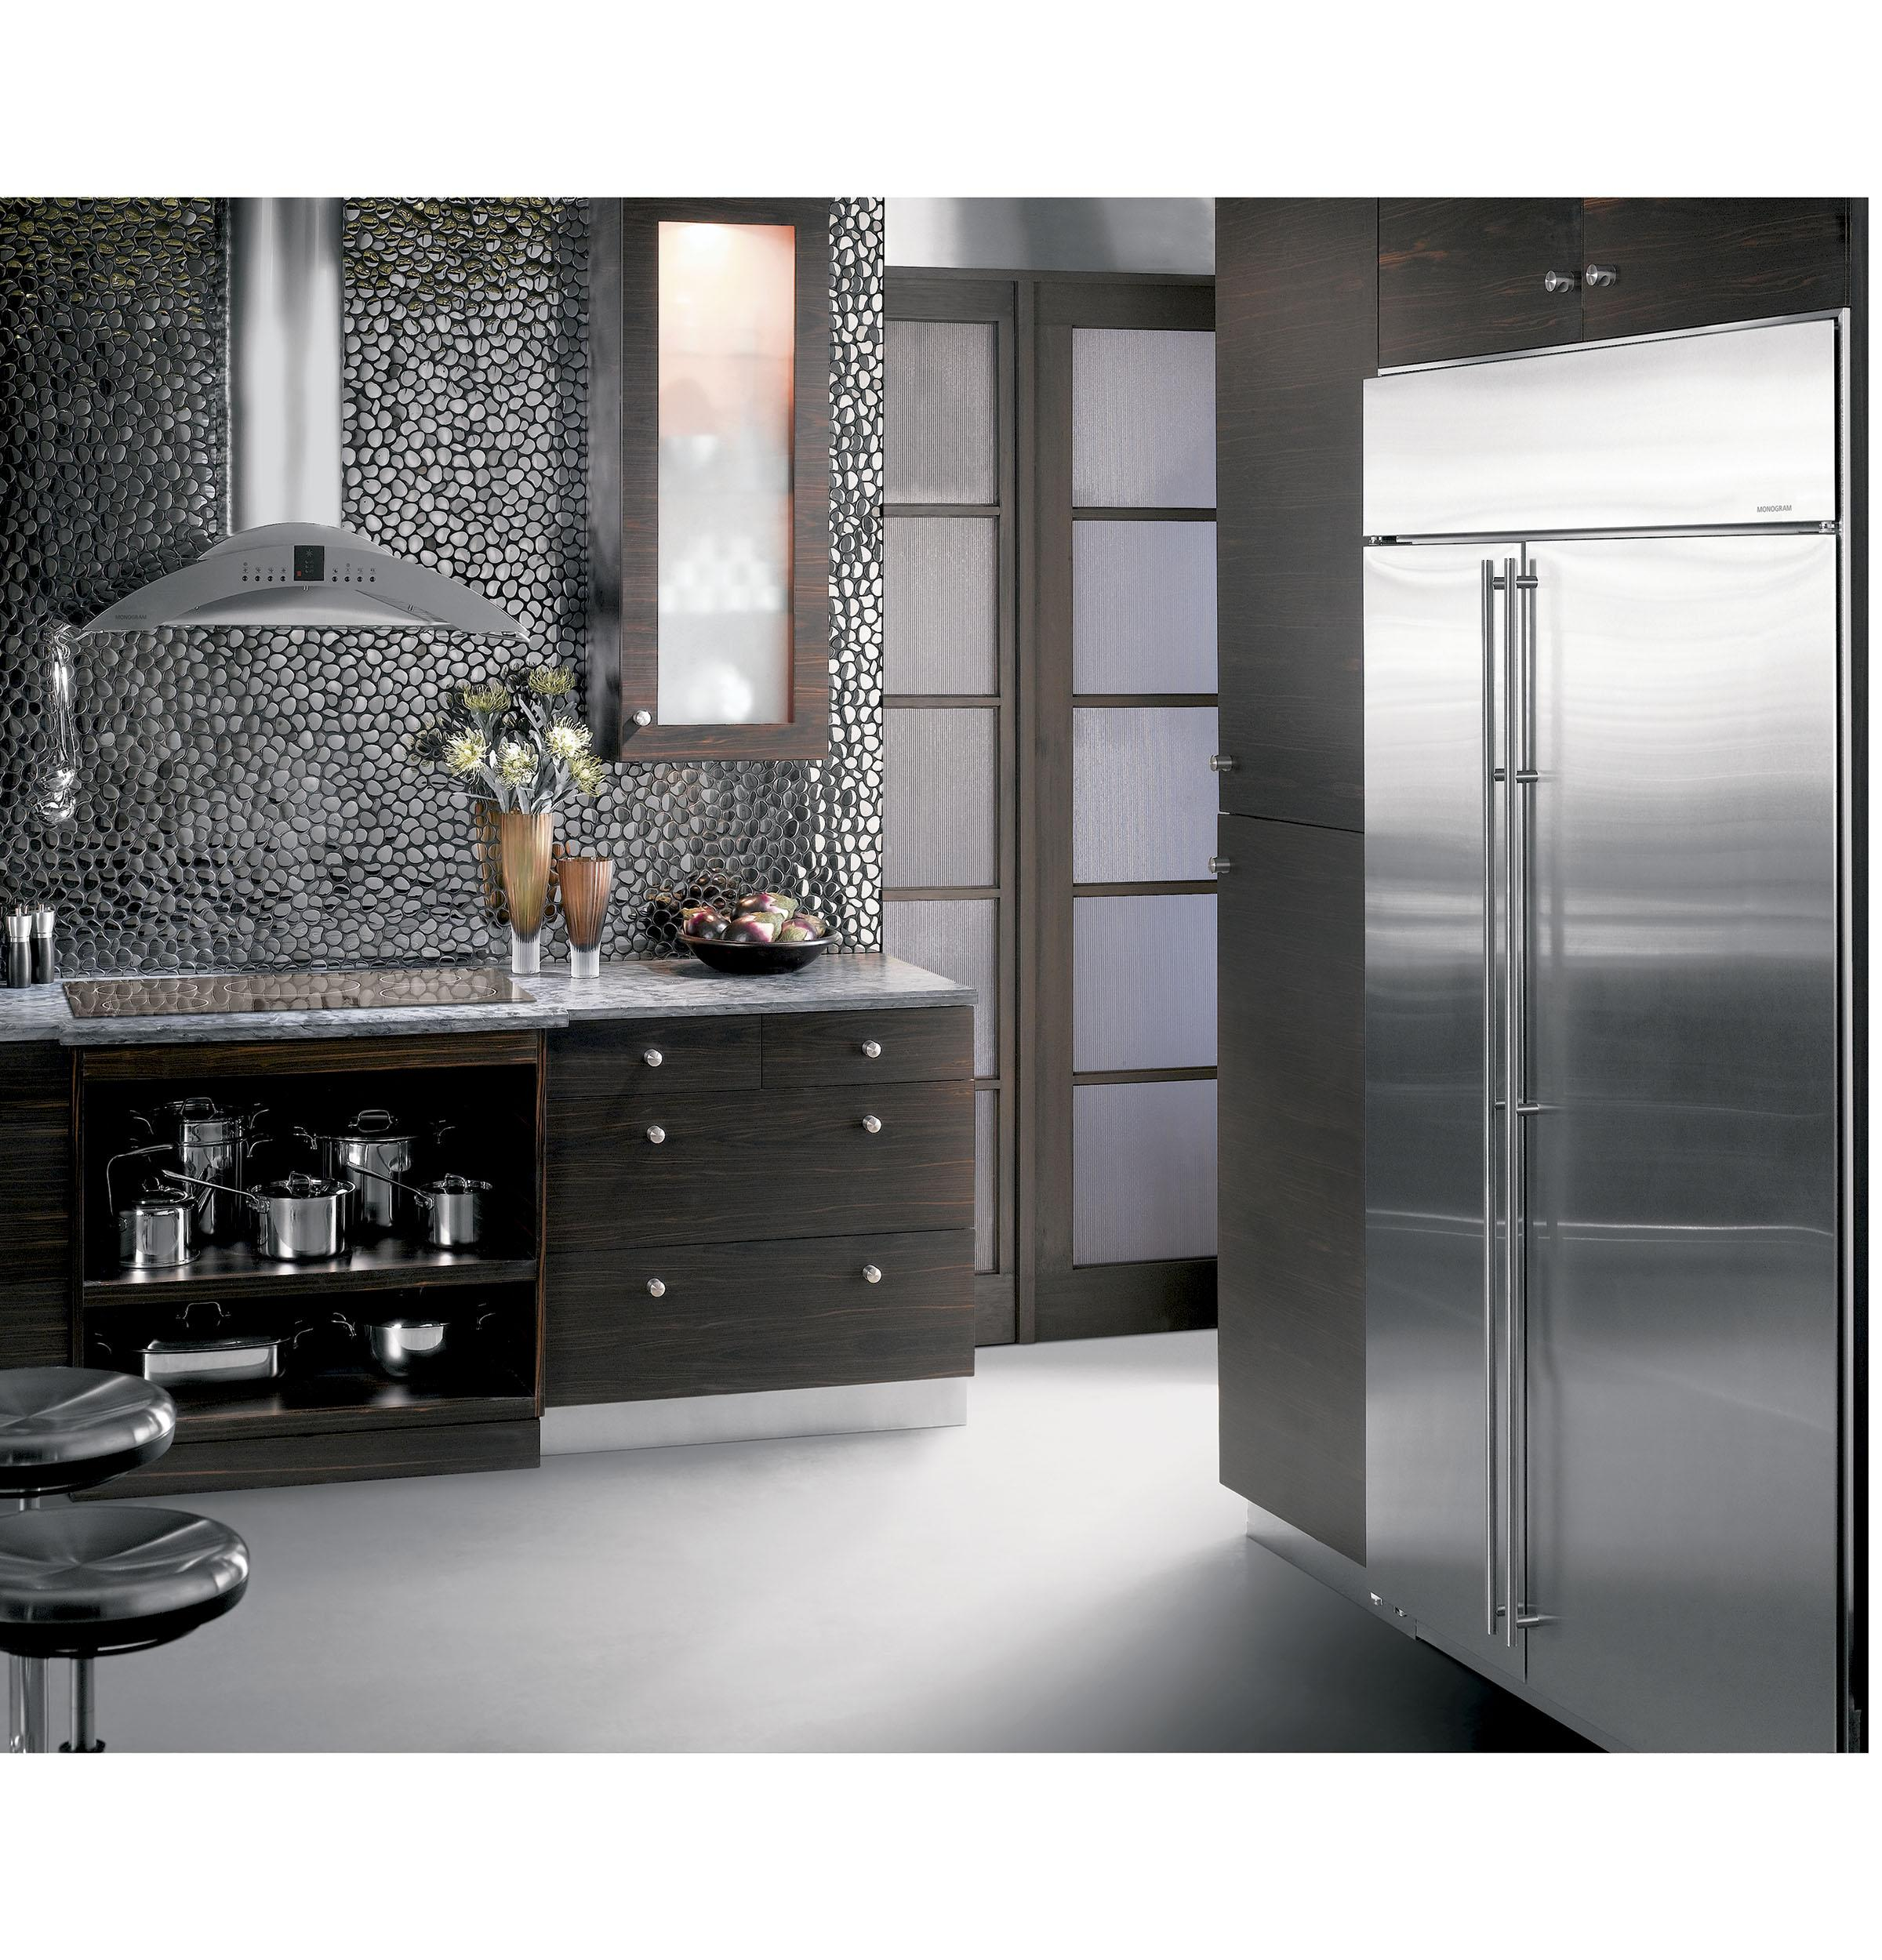 ge appliances monogram 42 built in side by side refrigerator ziss420nkss kieffer 39 s appliances. Black Bedroom Furniture Sets. Home Design Ideas